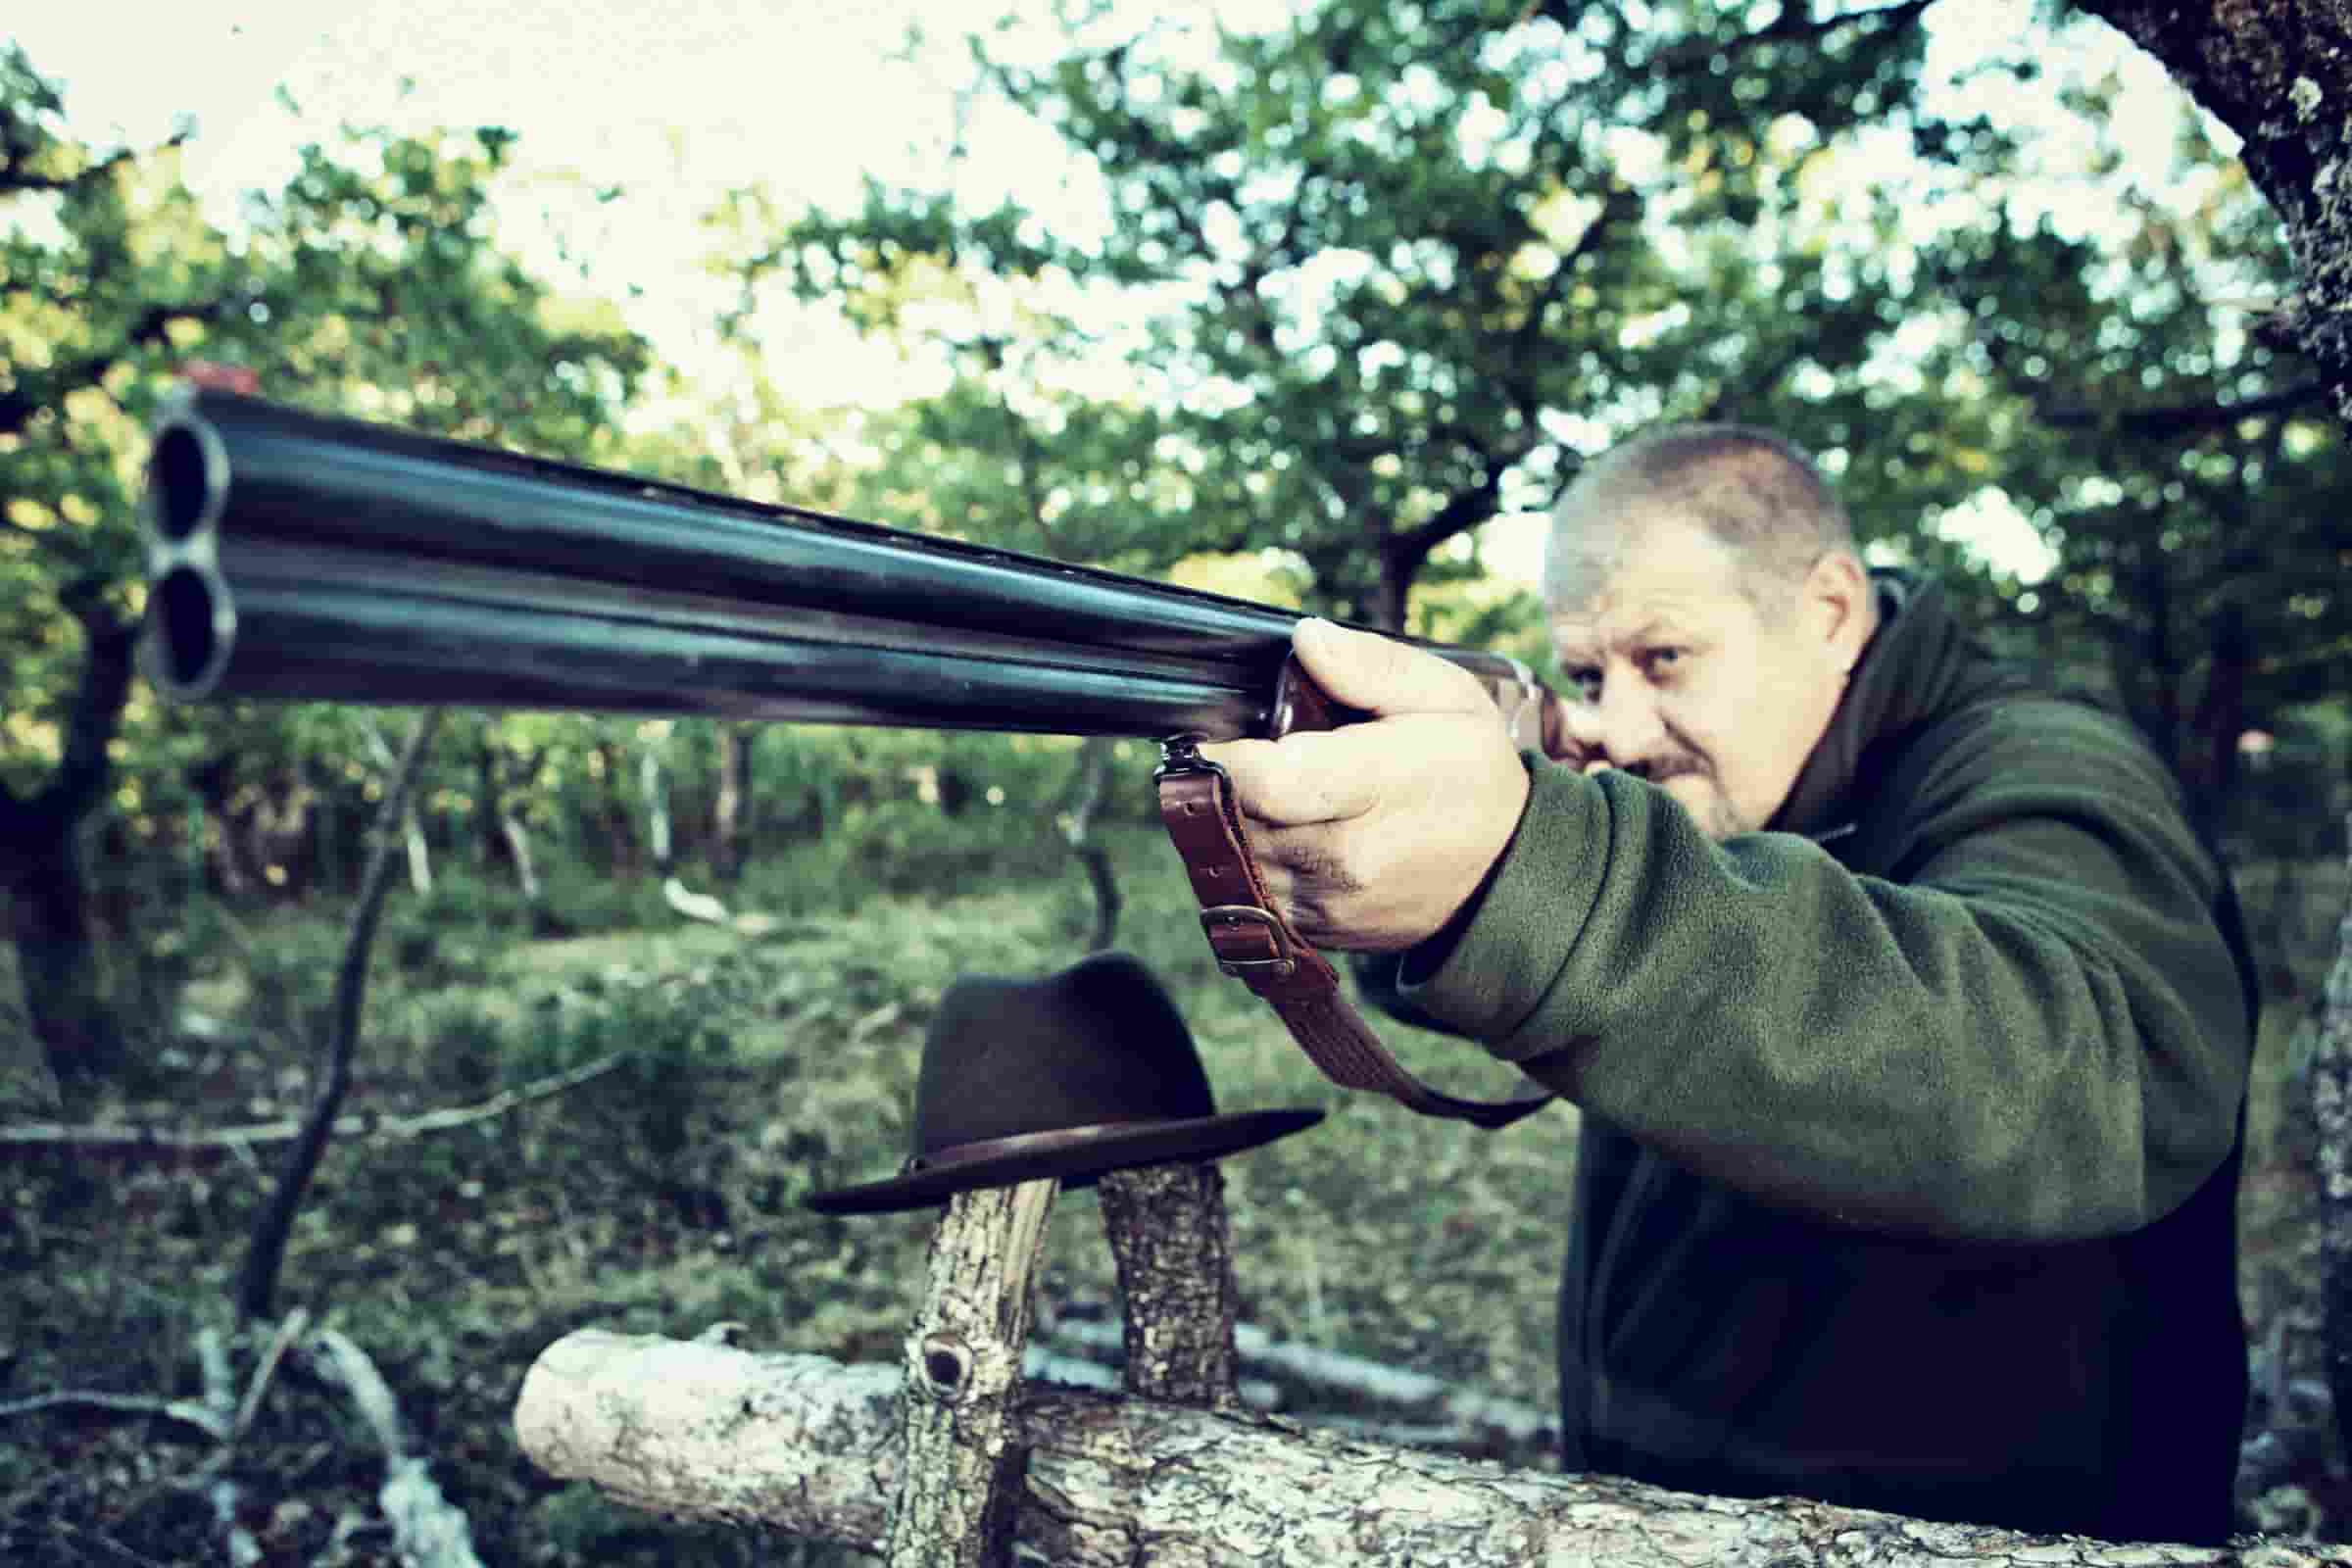 Clay pigeon shooting safety tips; A man ready to shoot with his head resting on a tree branch.